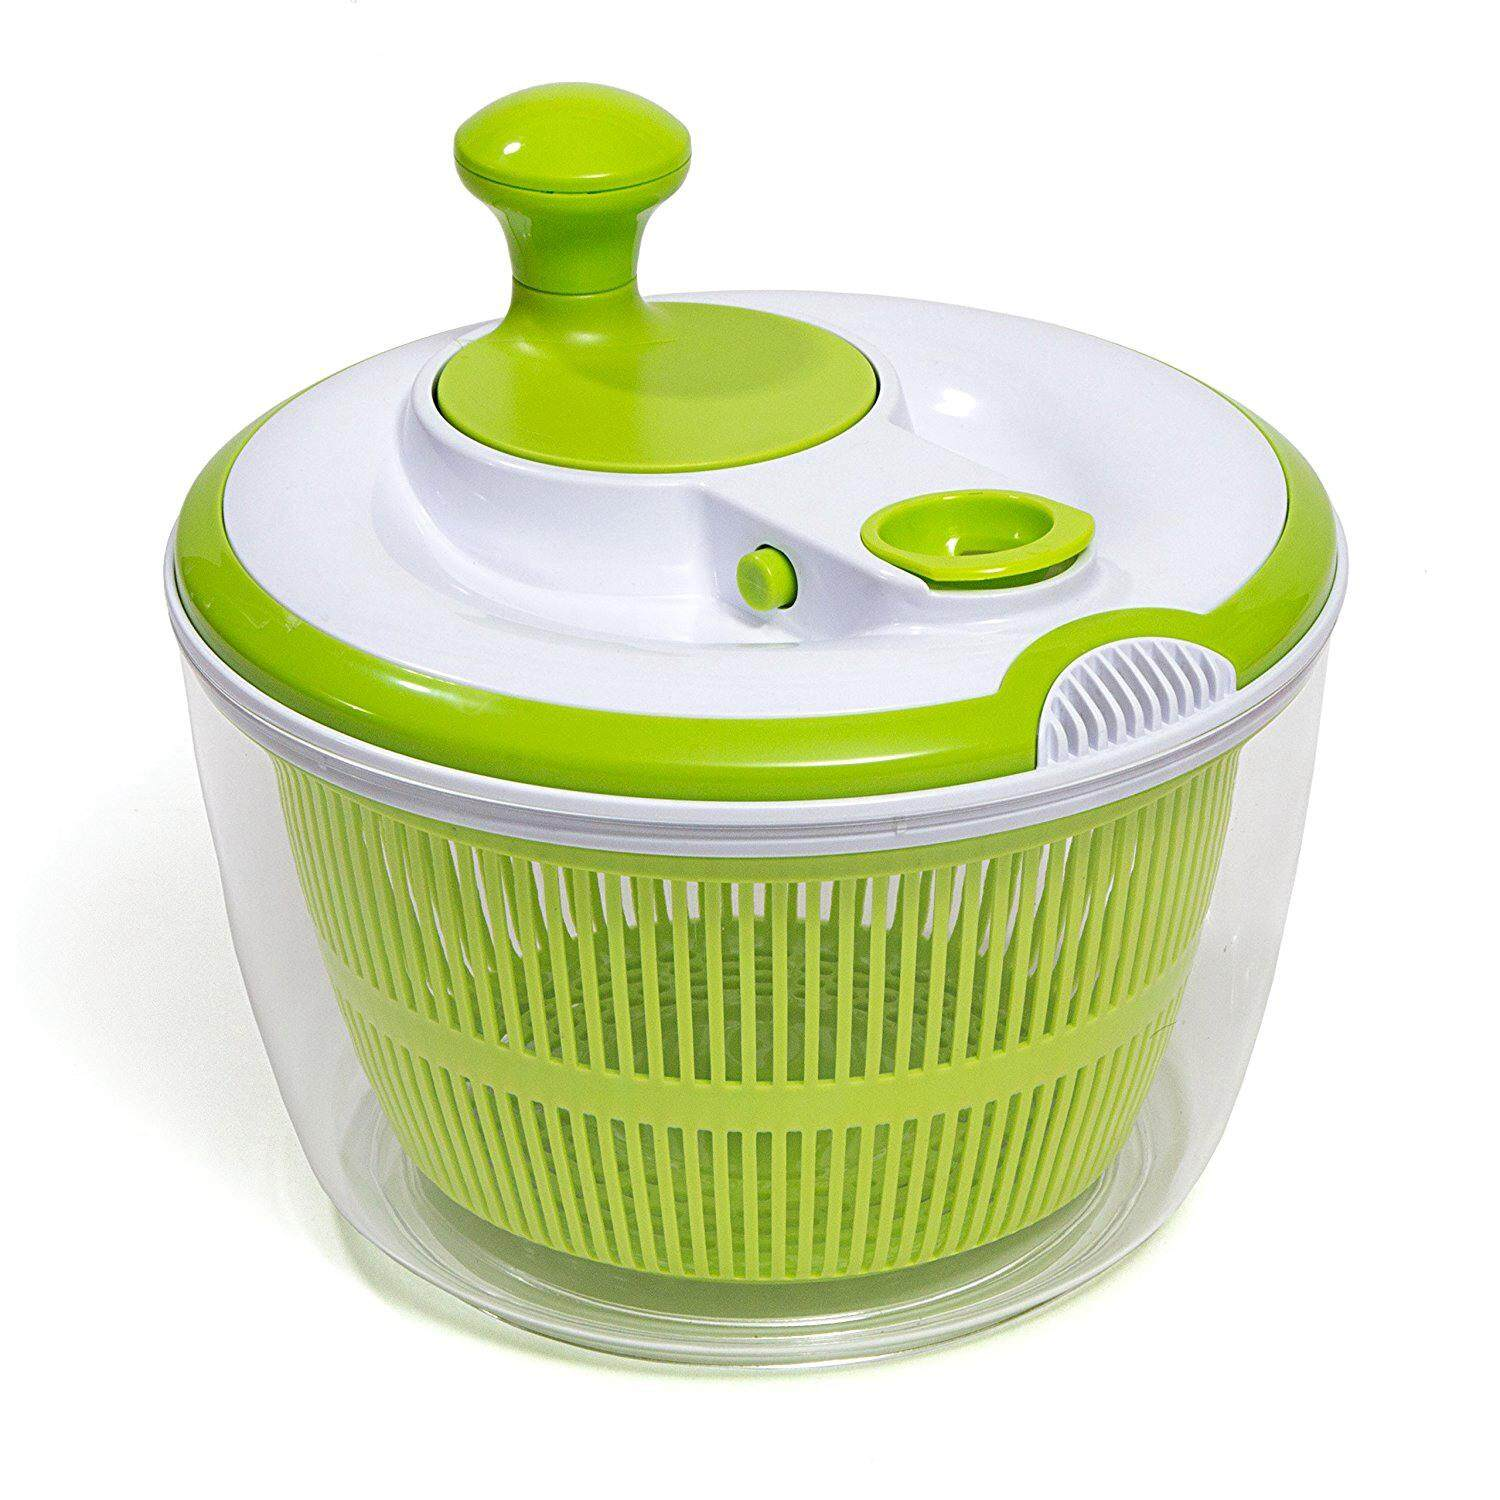 Manual Vegetable Dehydrator Basket Washer Fruits Salad Lettuce Spinner Strainer Kitchen Gadget By Yoyonow.